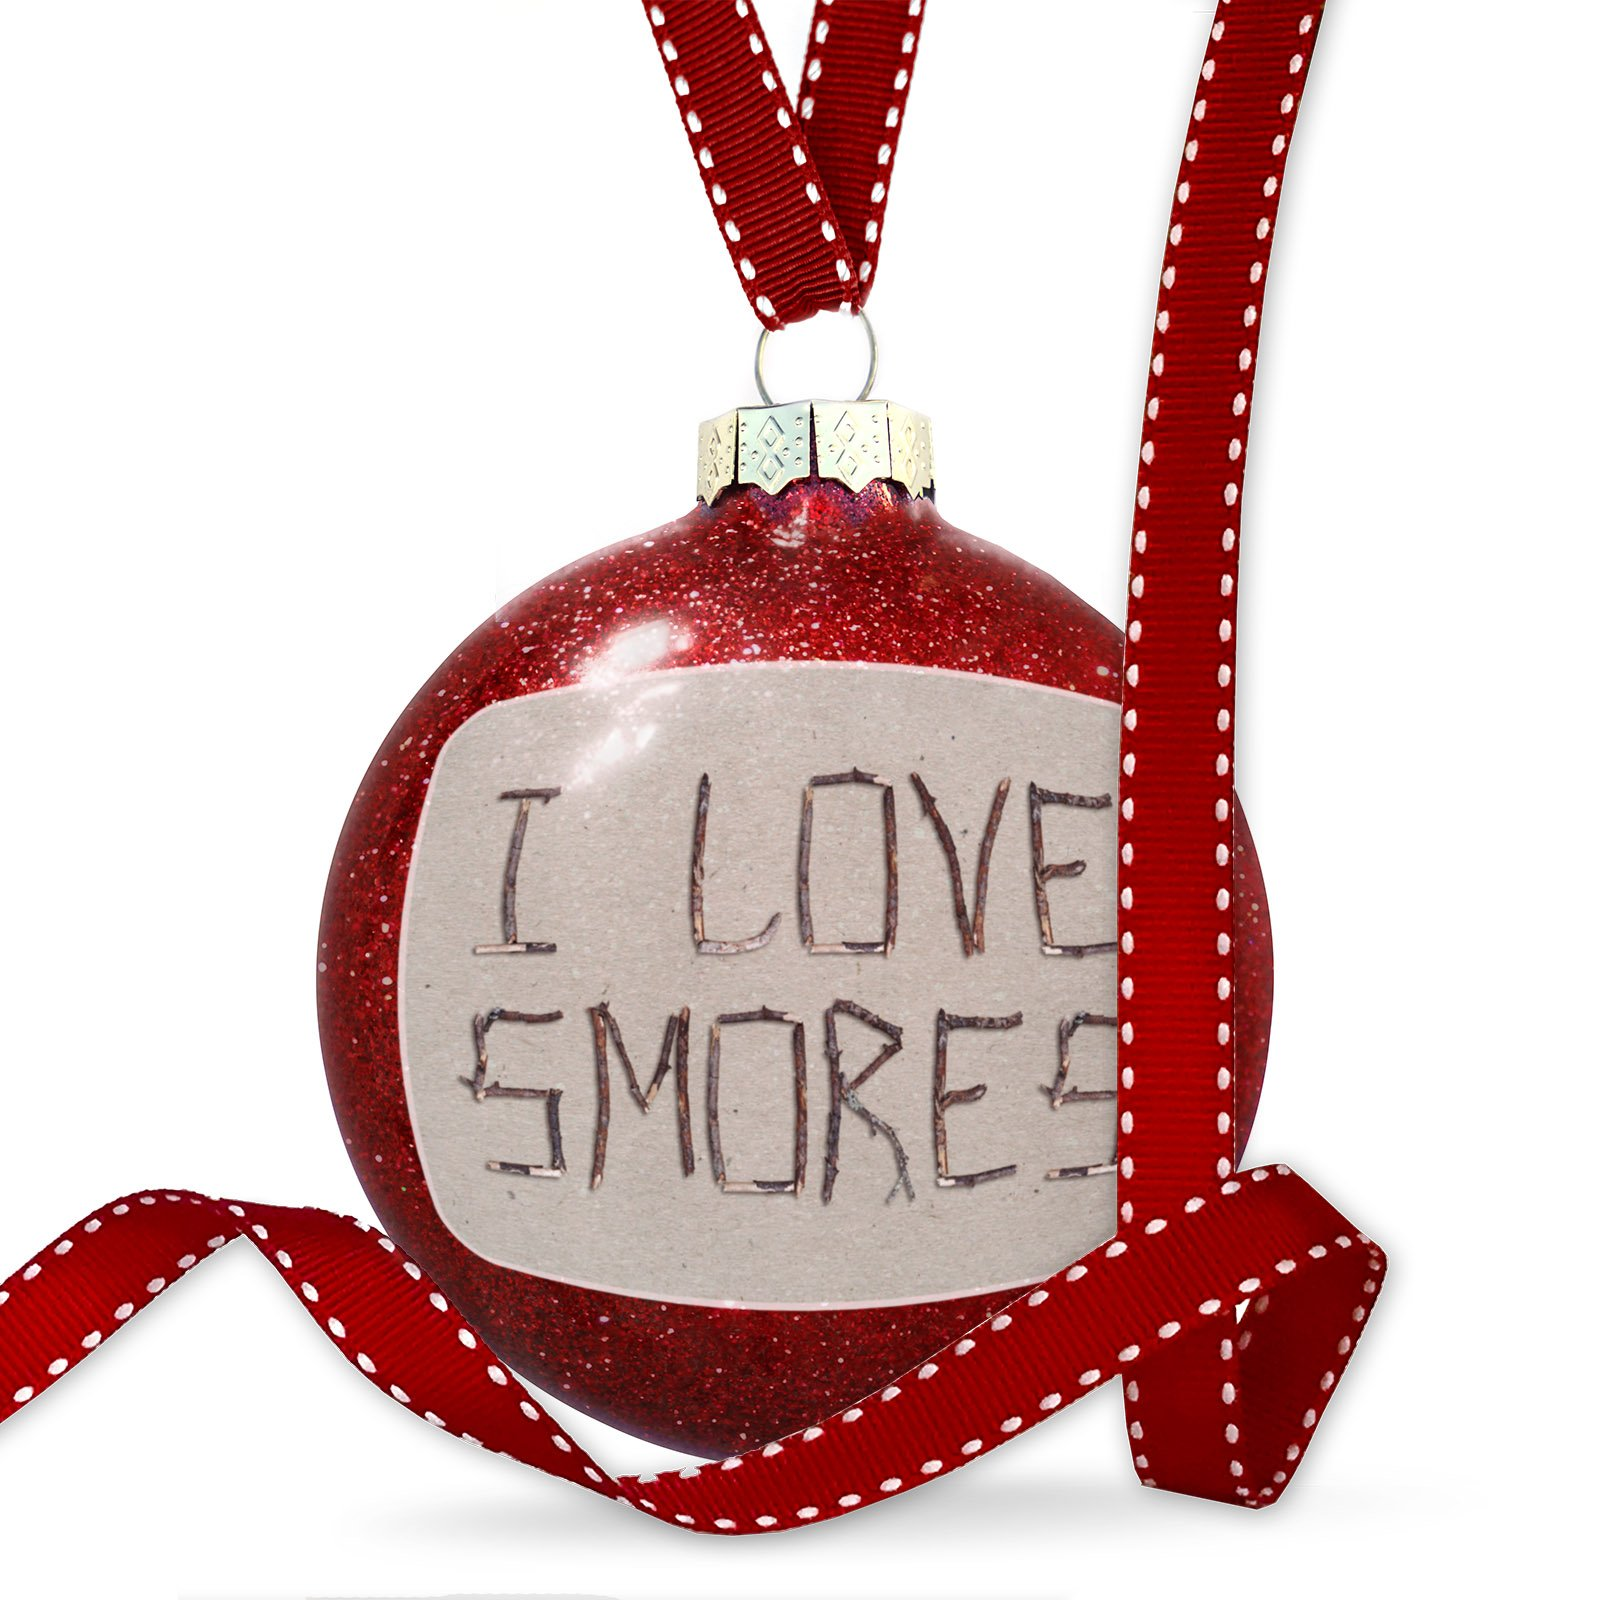 Christmas Decoration I Love Smores Nature Wood Tree Ornament by NEONBLOND (Image #1)